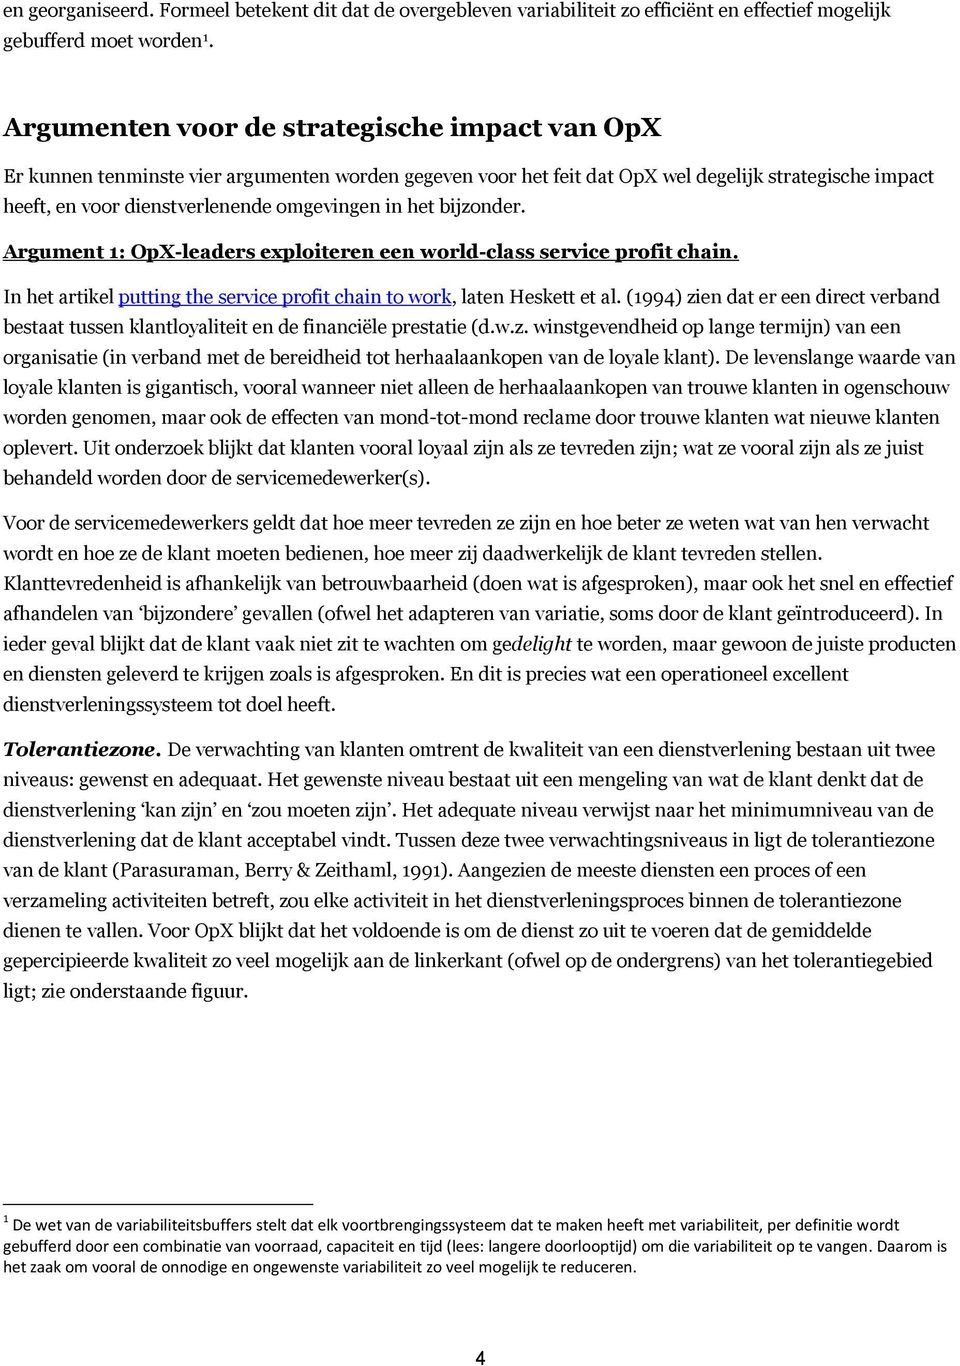 het bijzonder. Argument 1: OpX-leaders exploiteren een world-class service profit chain. In het artikel putting the service profit chain to work, laten Heskett et al.